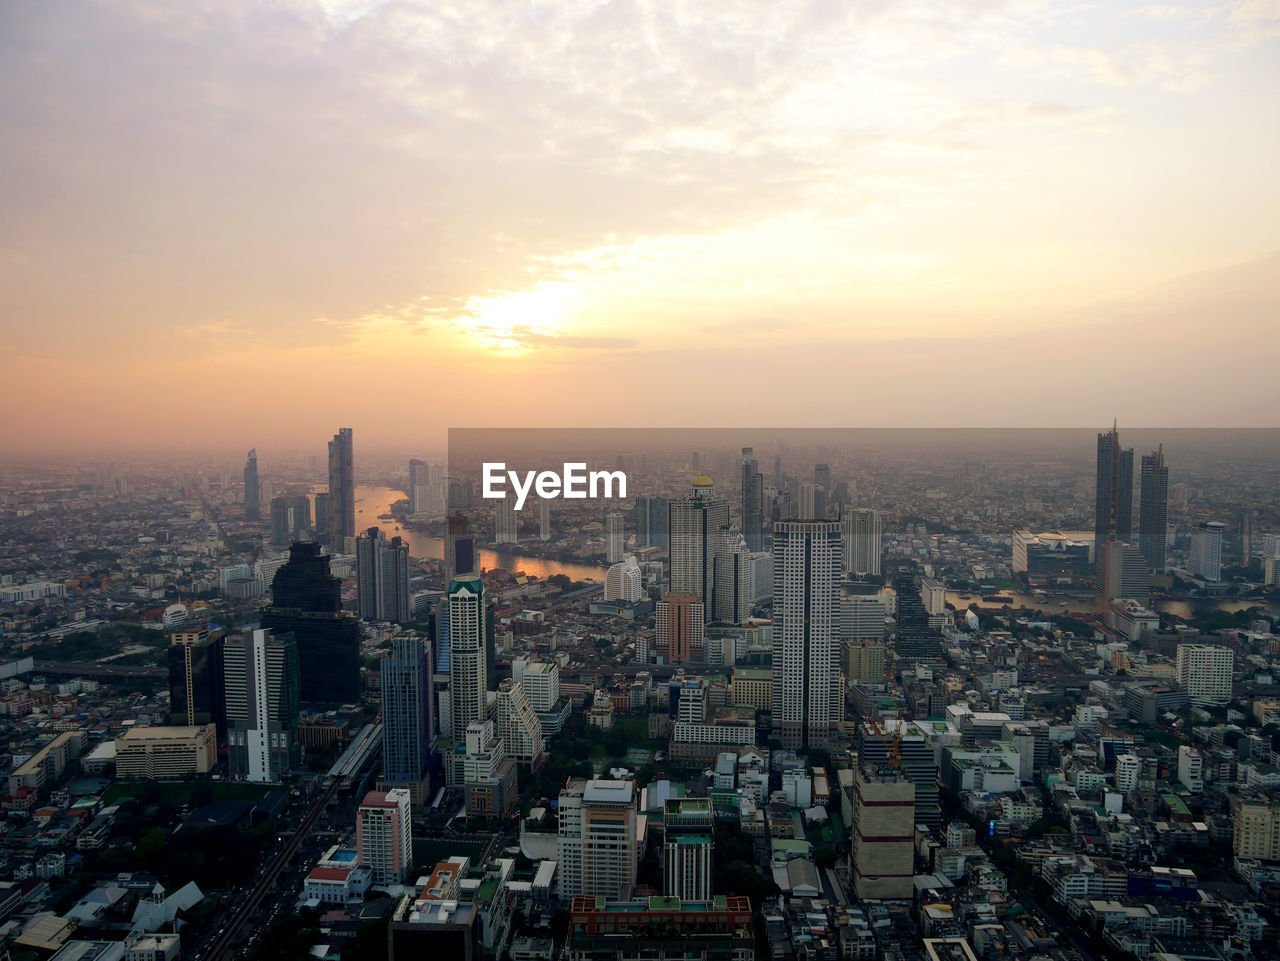 building exterior, sky, cityscape, architecture, built structure, city, building, sunset, office building exterior, crowd, skyscraper, tall - high, residential district, crowded, nature, tower, urban skyline, landscape, modern, outdoors, financial district, spire